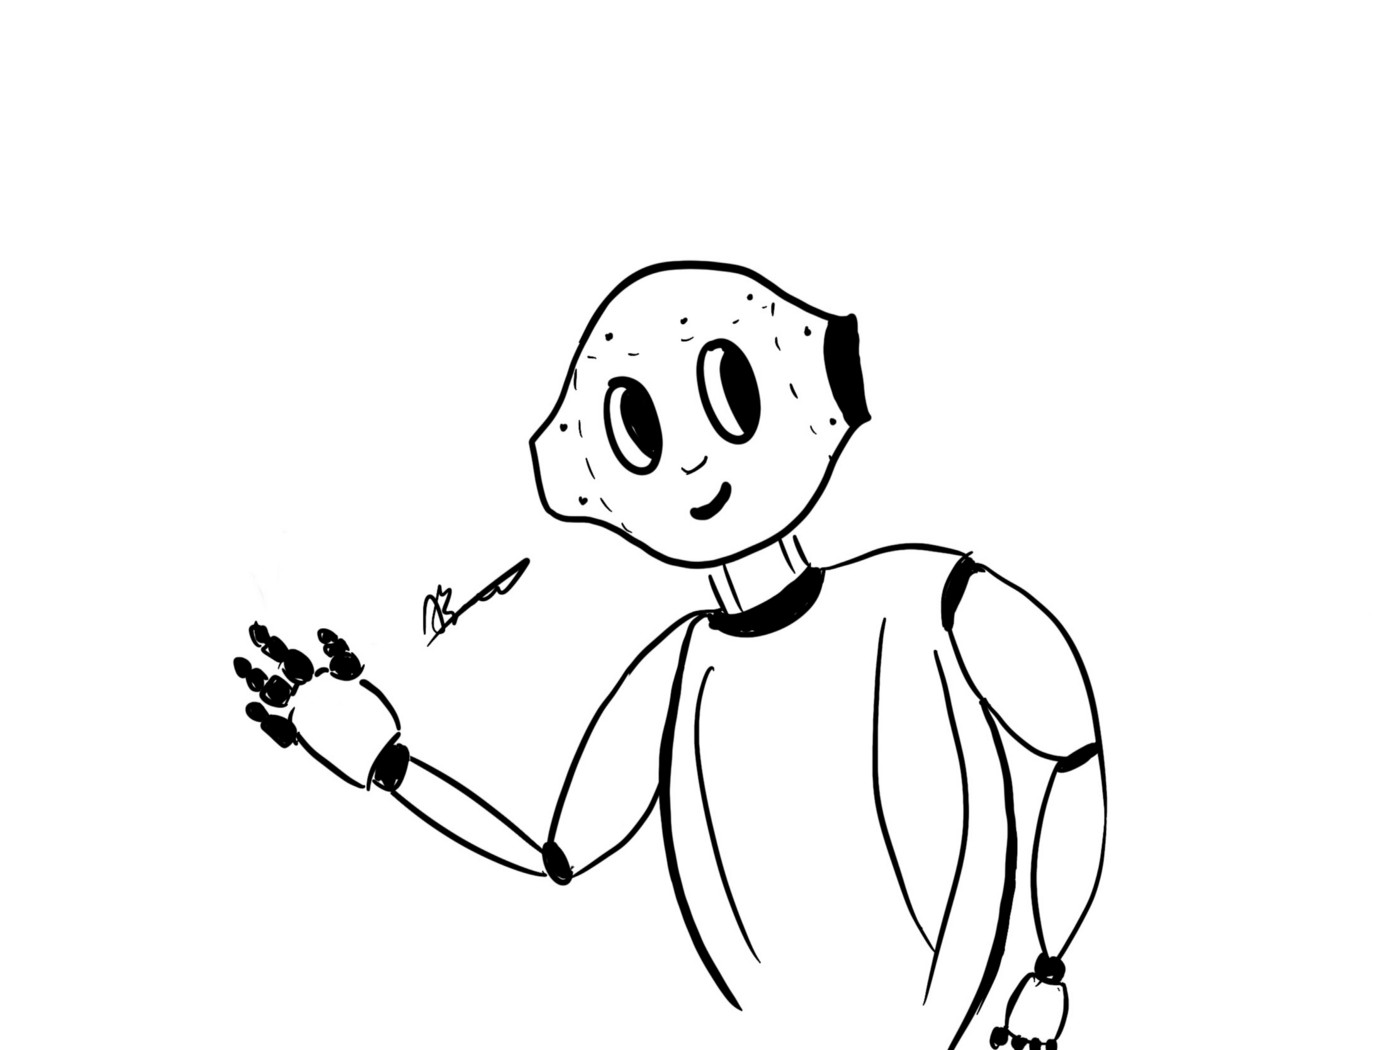 Illustration of a Personal Assistant Robot